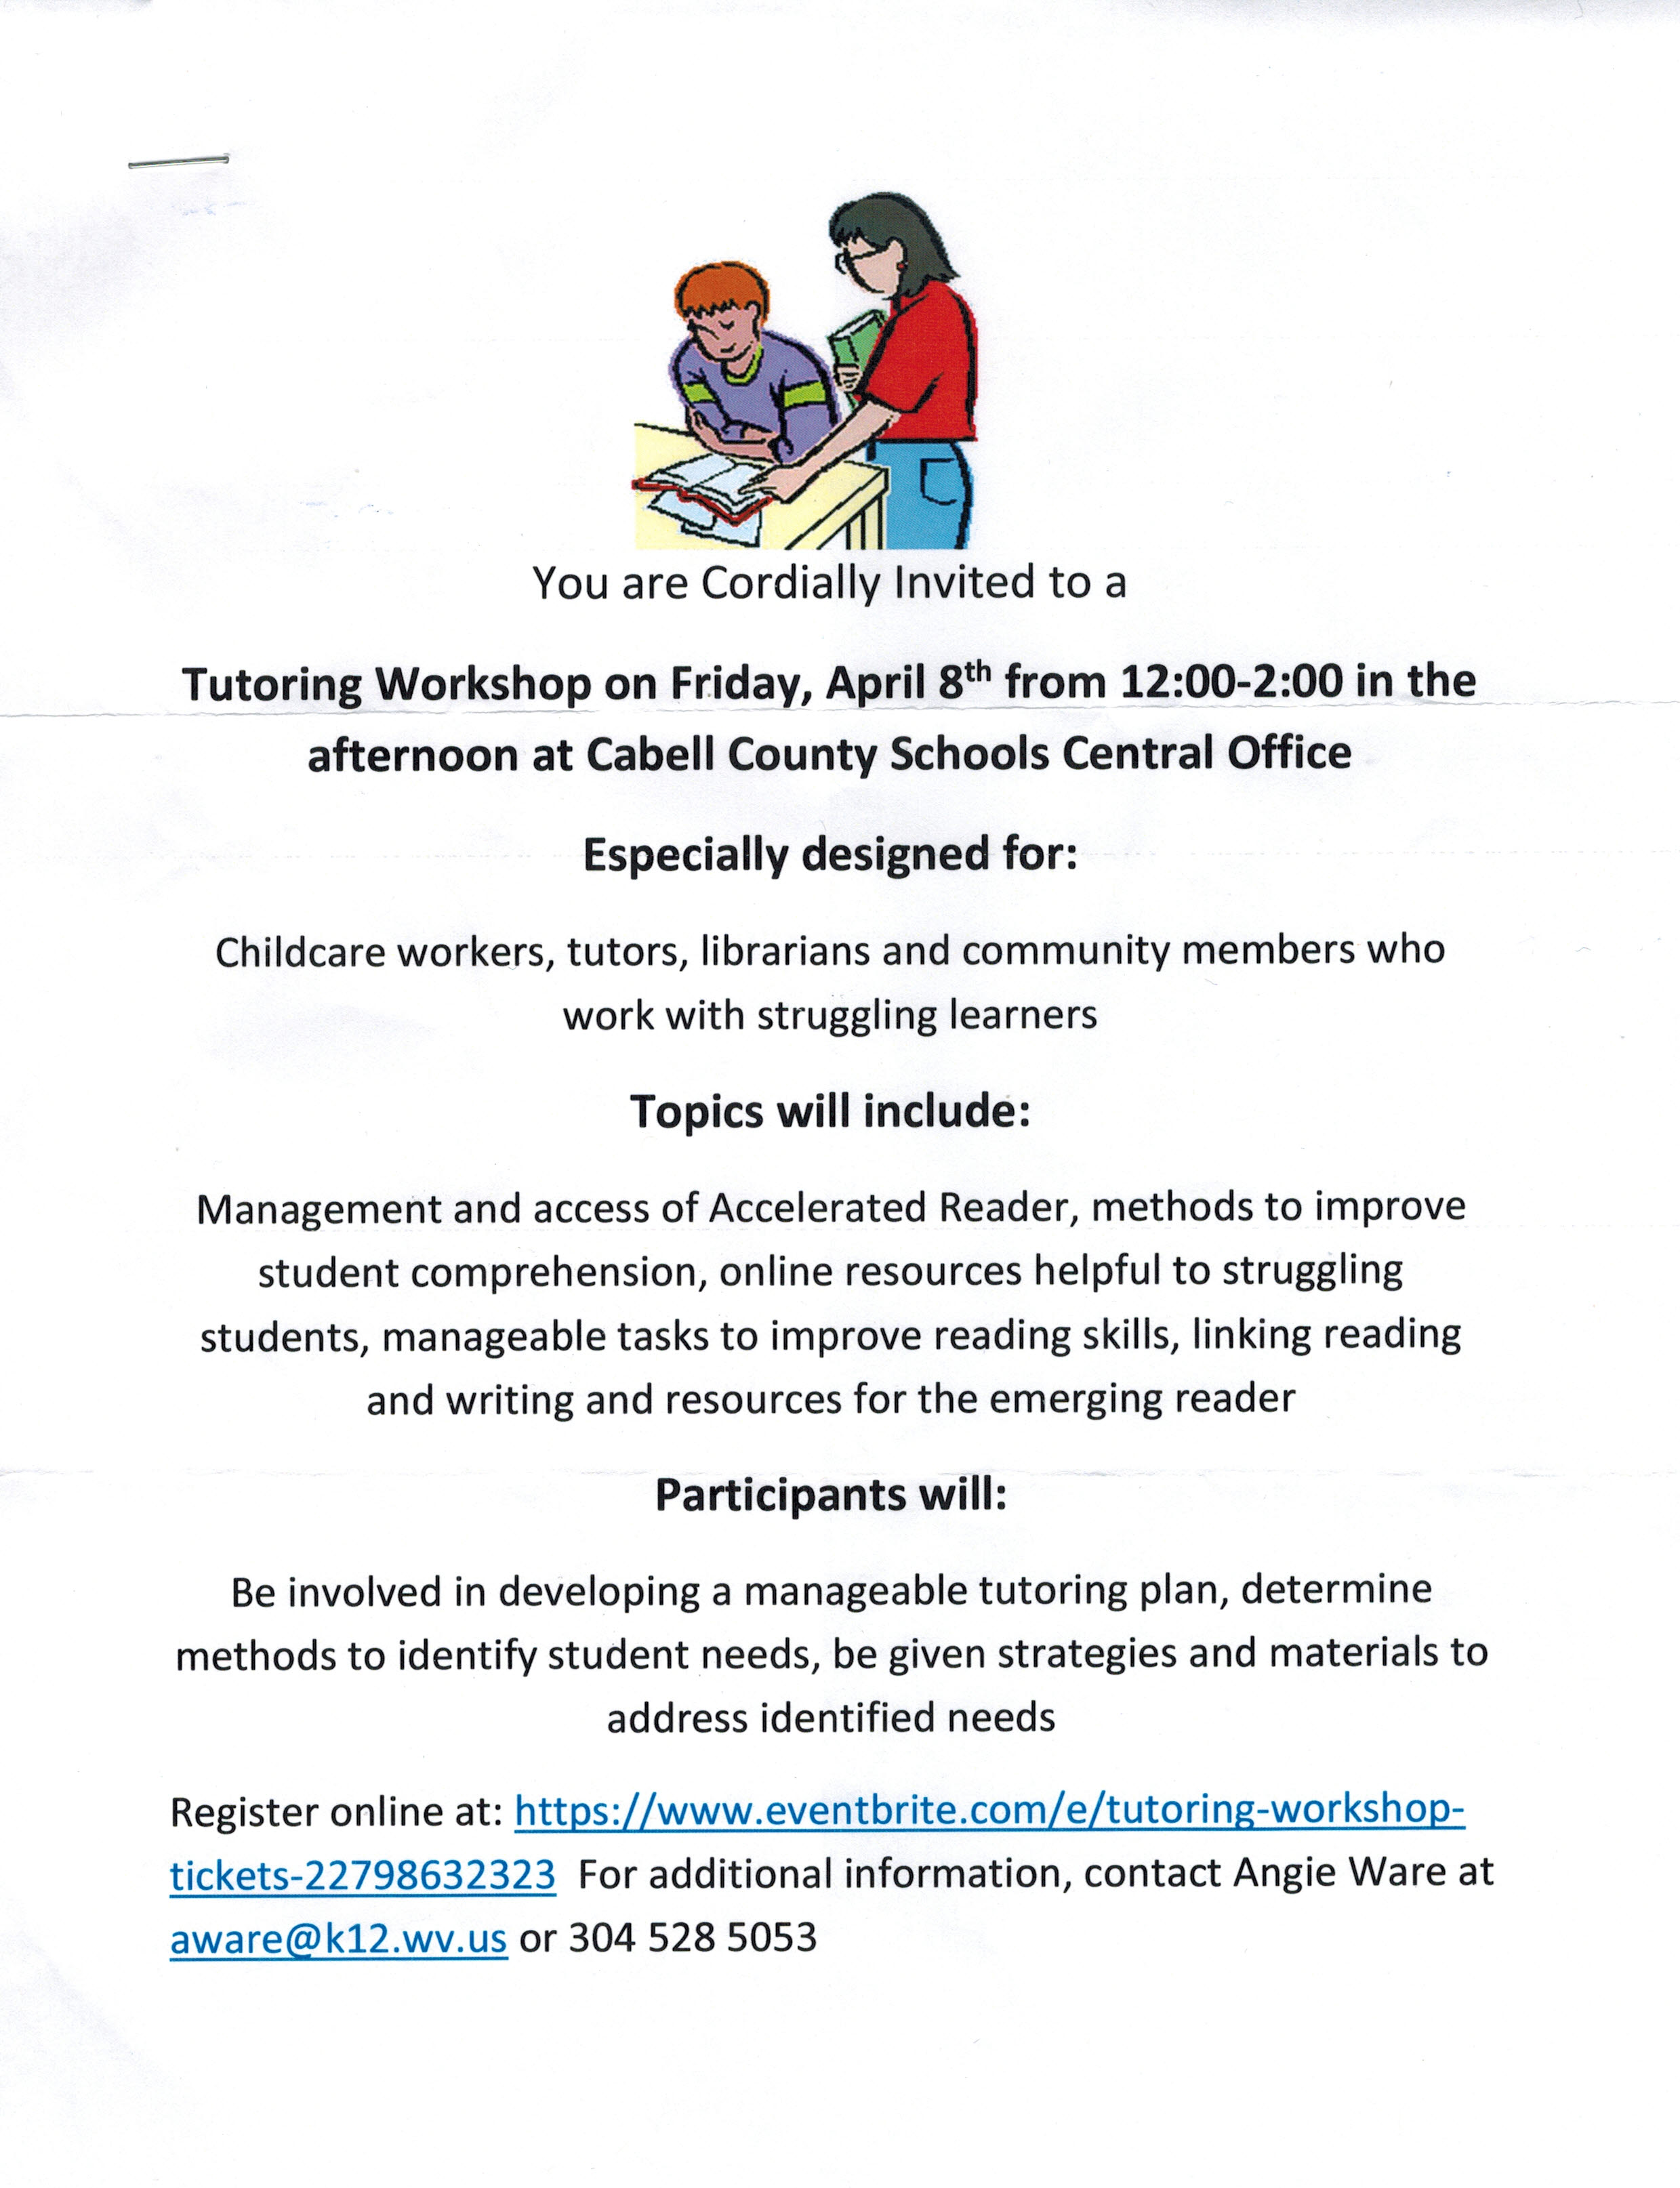 Cabell County Tutoring Workshop 4-8-16 JPEG